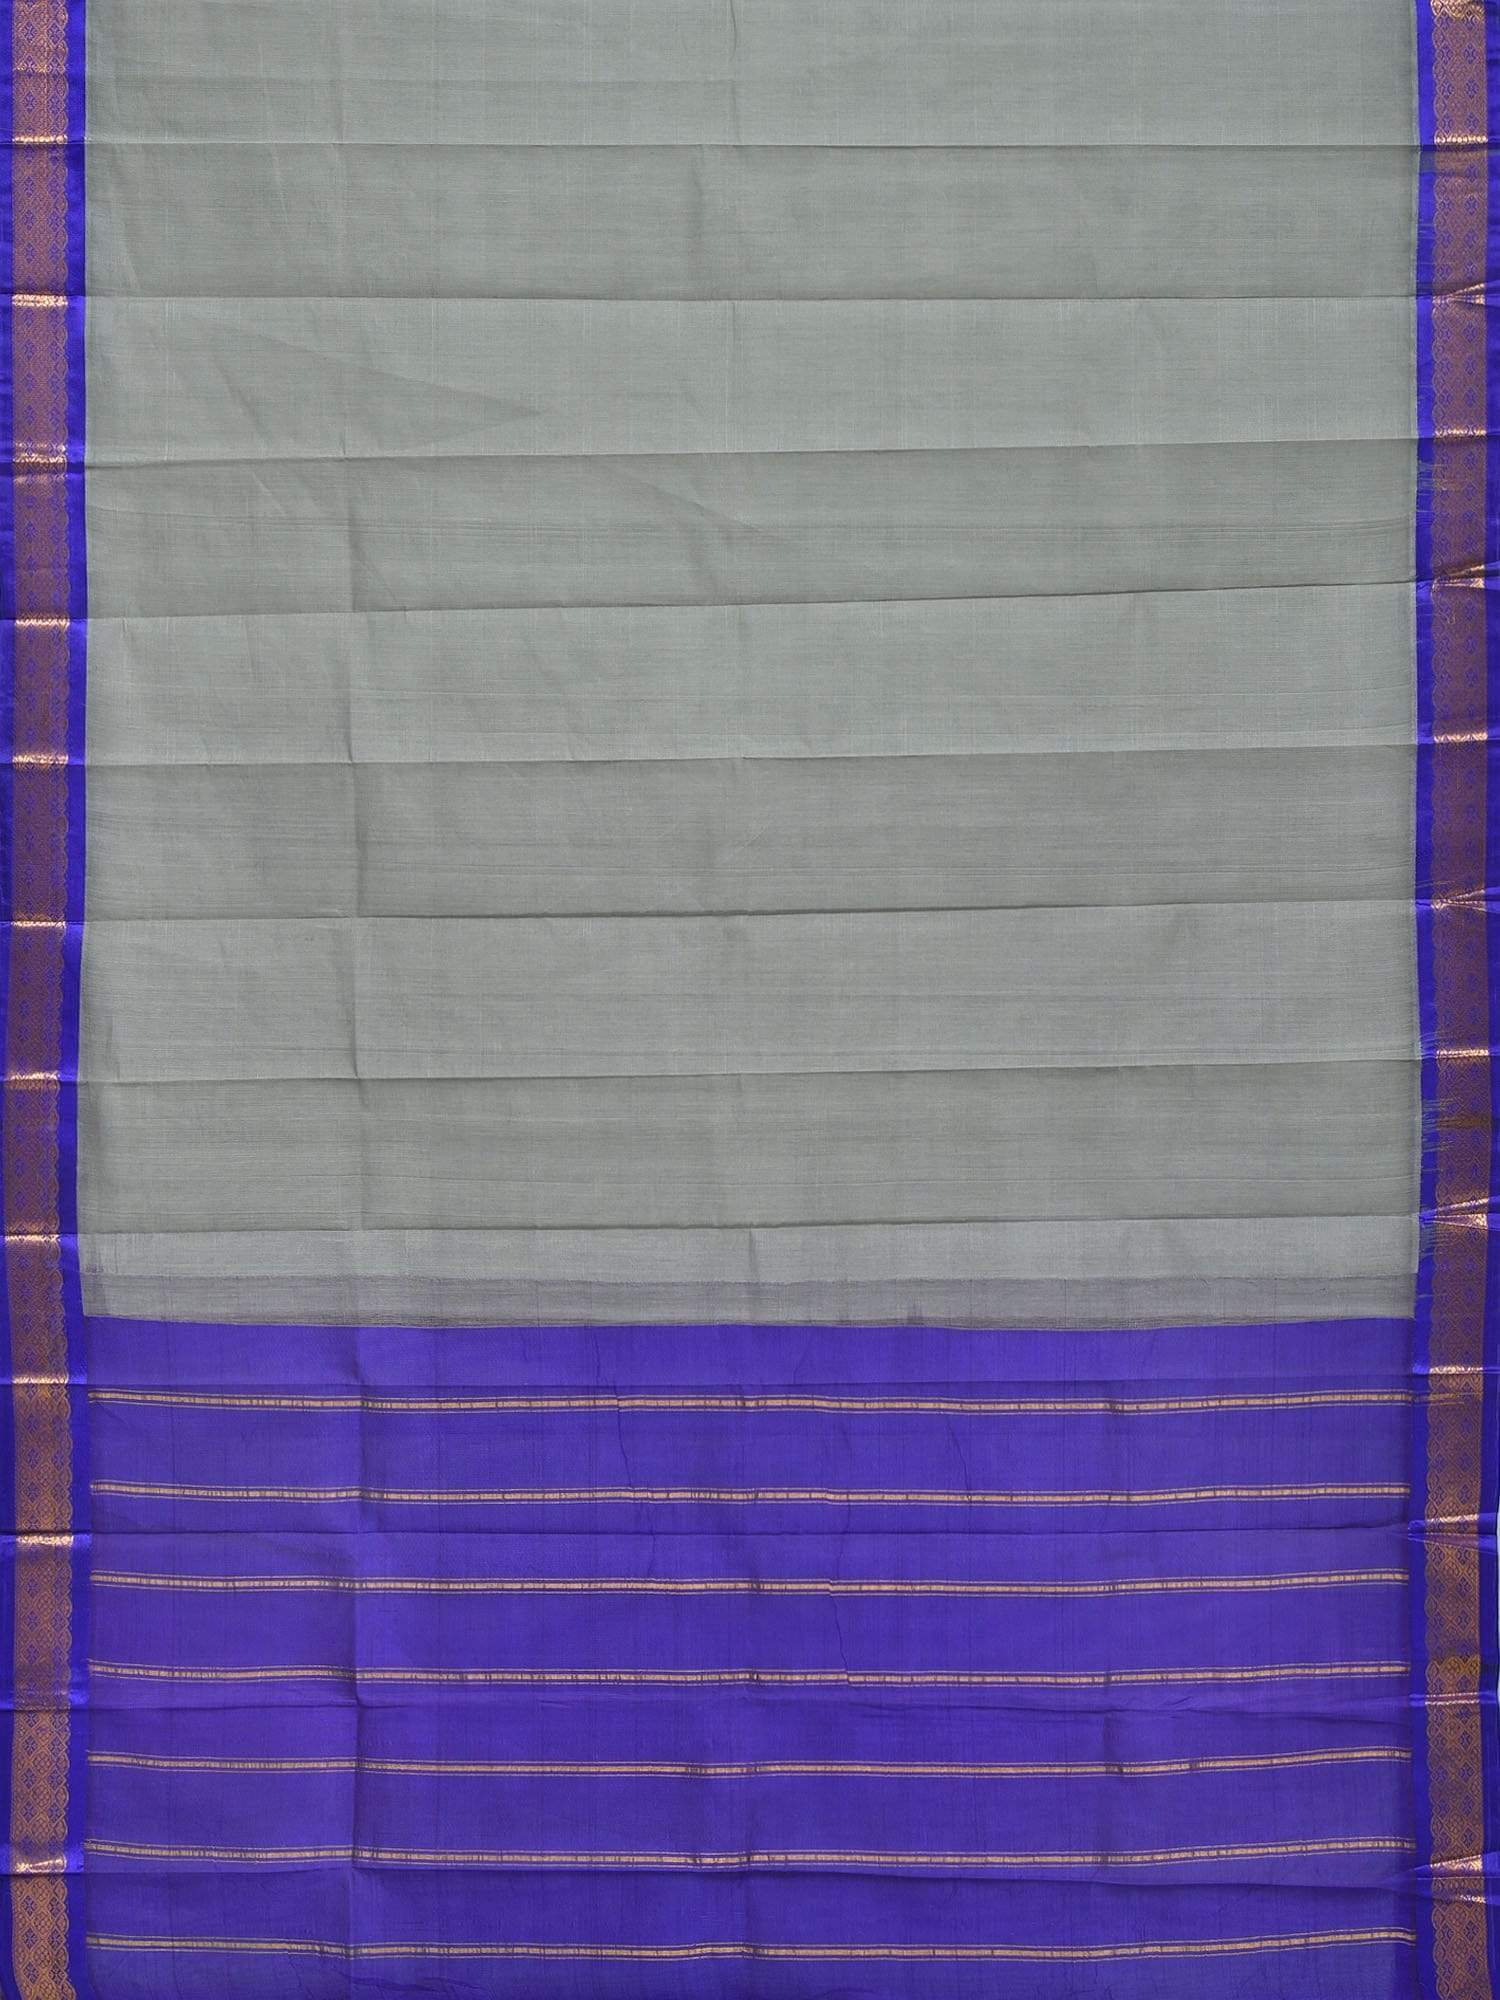 Grey and Blue Gadwal Cotton Handloom Plain Saree with Border Design No Blouse g0224